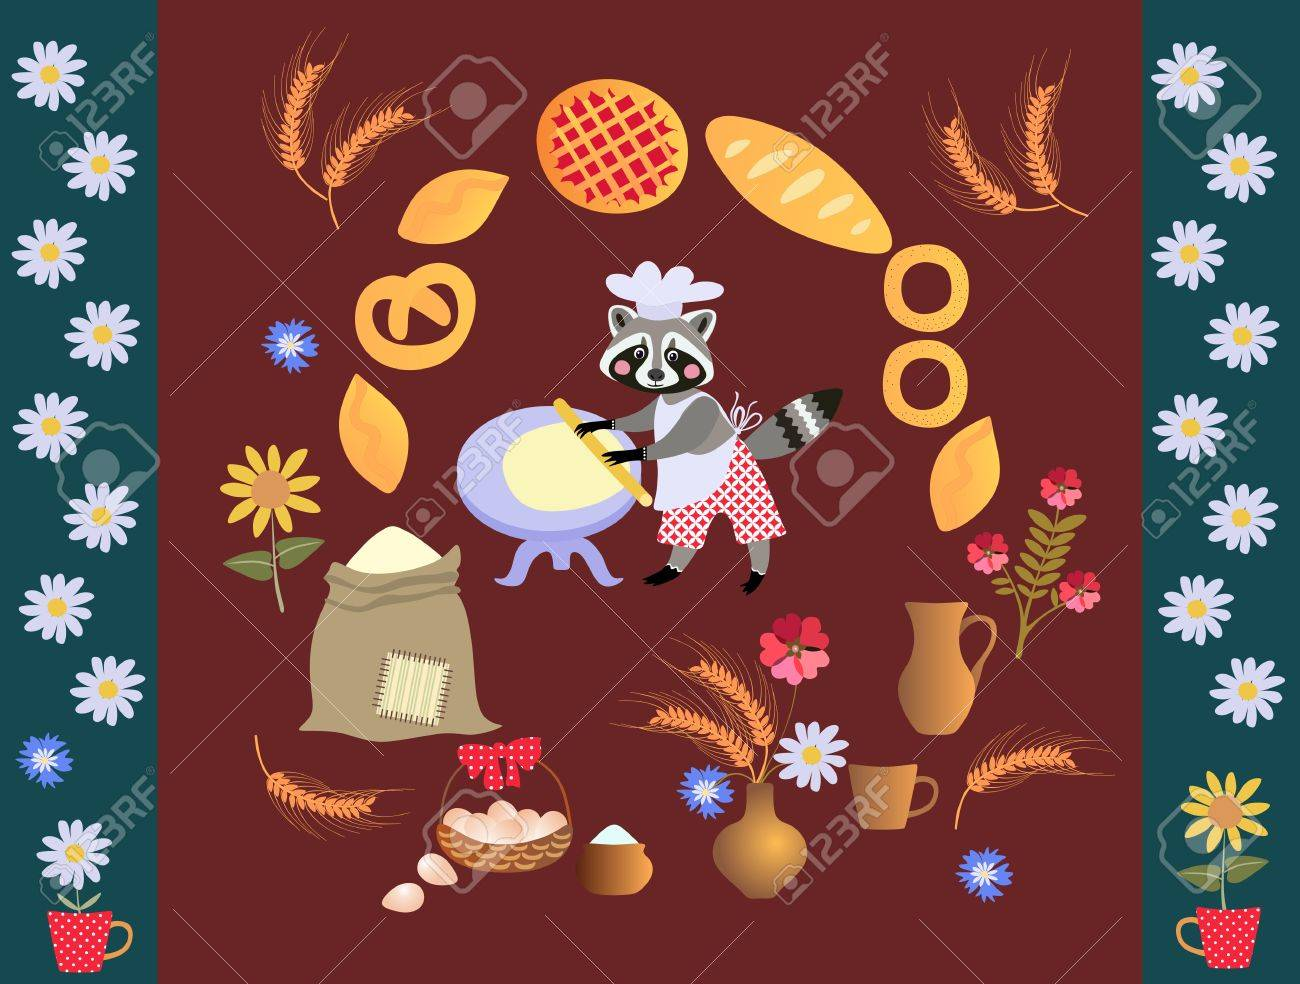 Cute Cartoon Raccoon Baker With Dough And Rolling Pin. Card ...